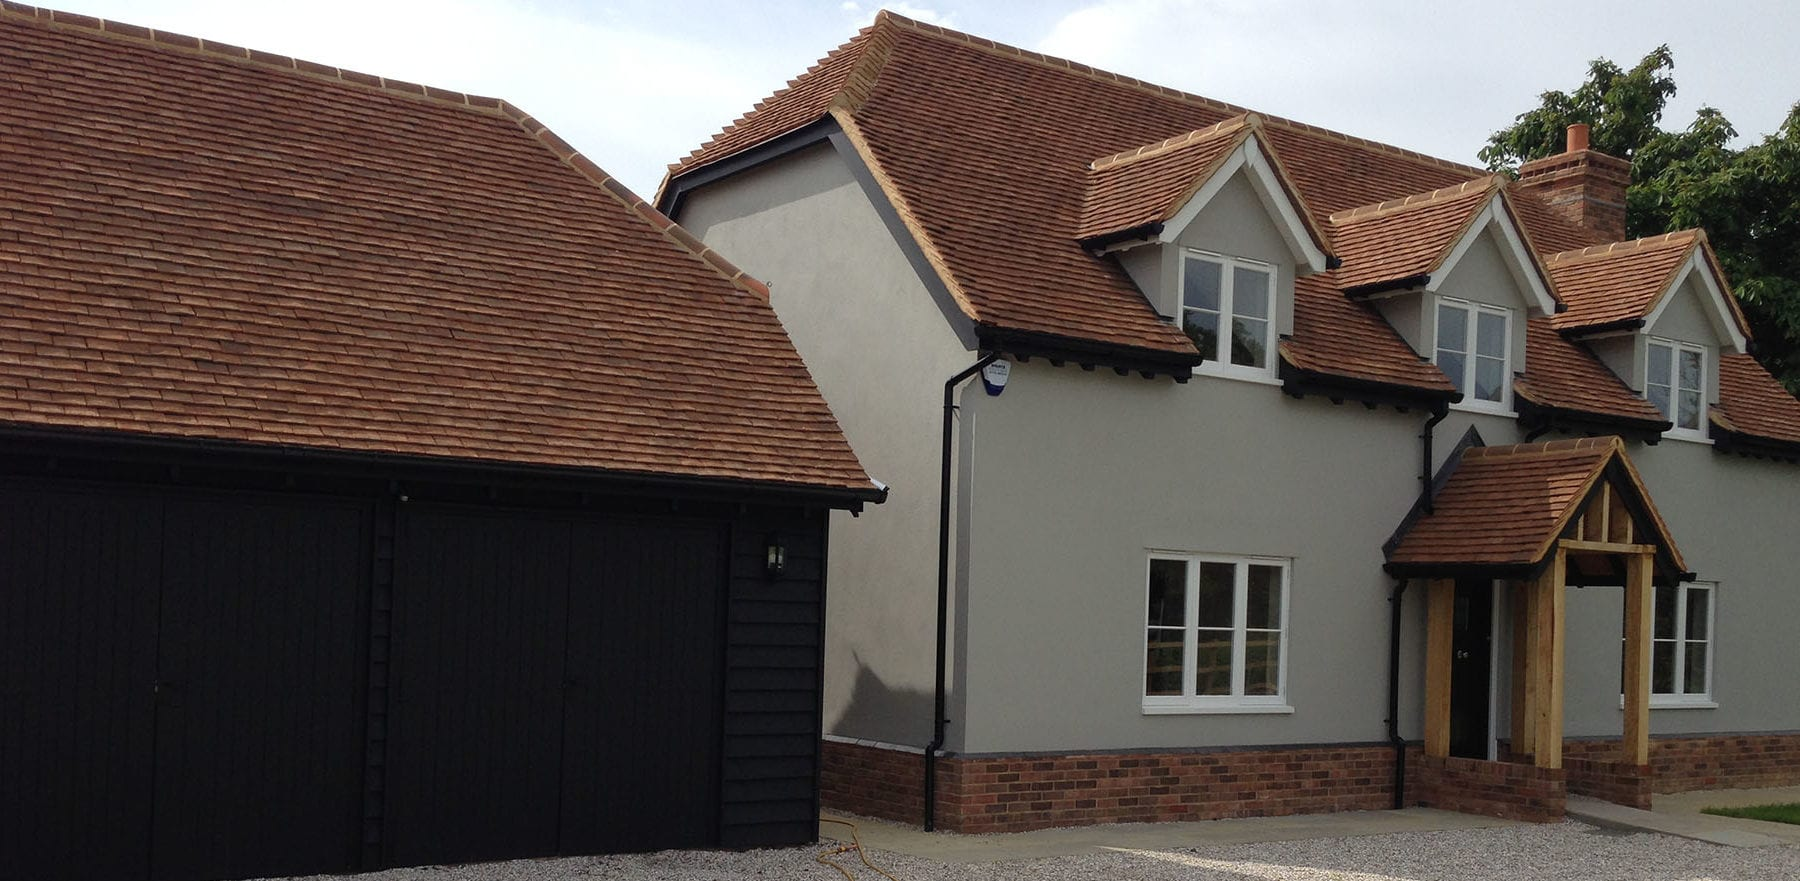 Lifestiles - Handcrafted Foxearth Clay Roof Tiles - Yeldham, England 2